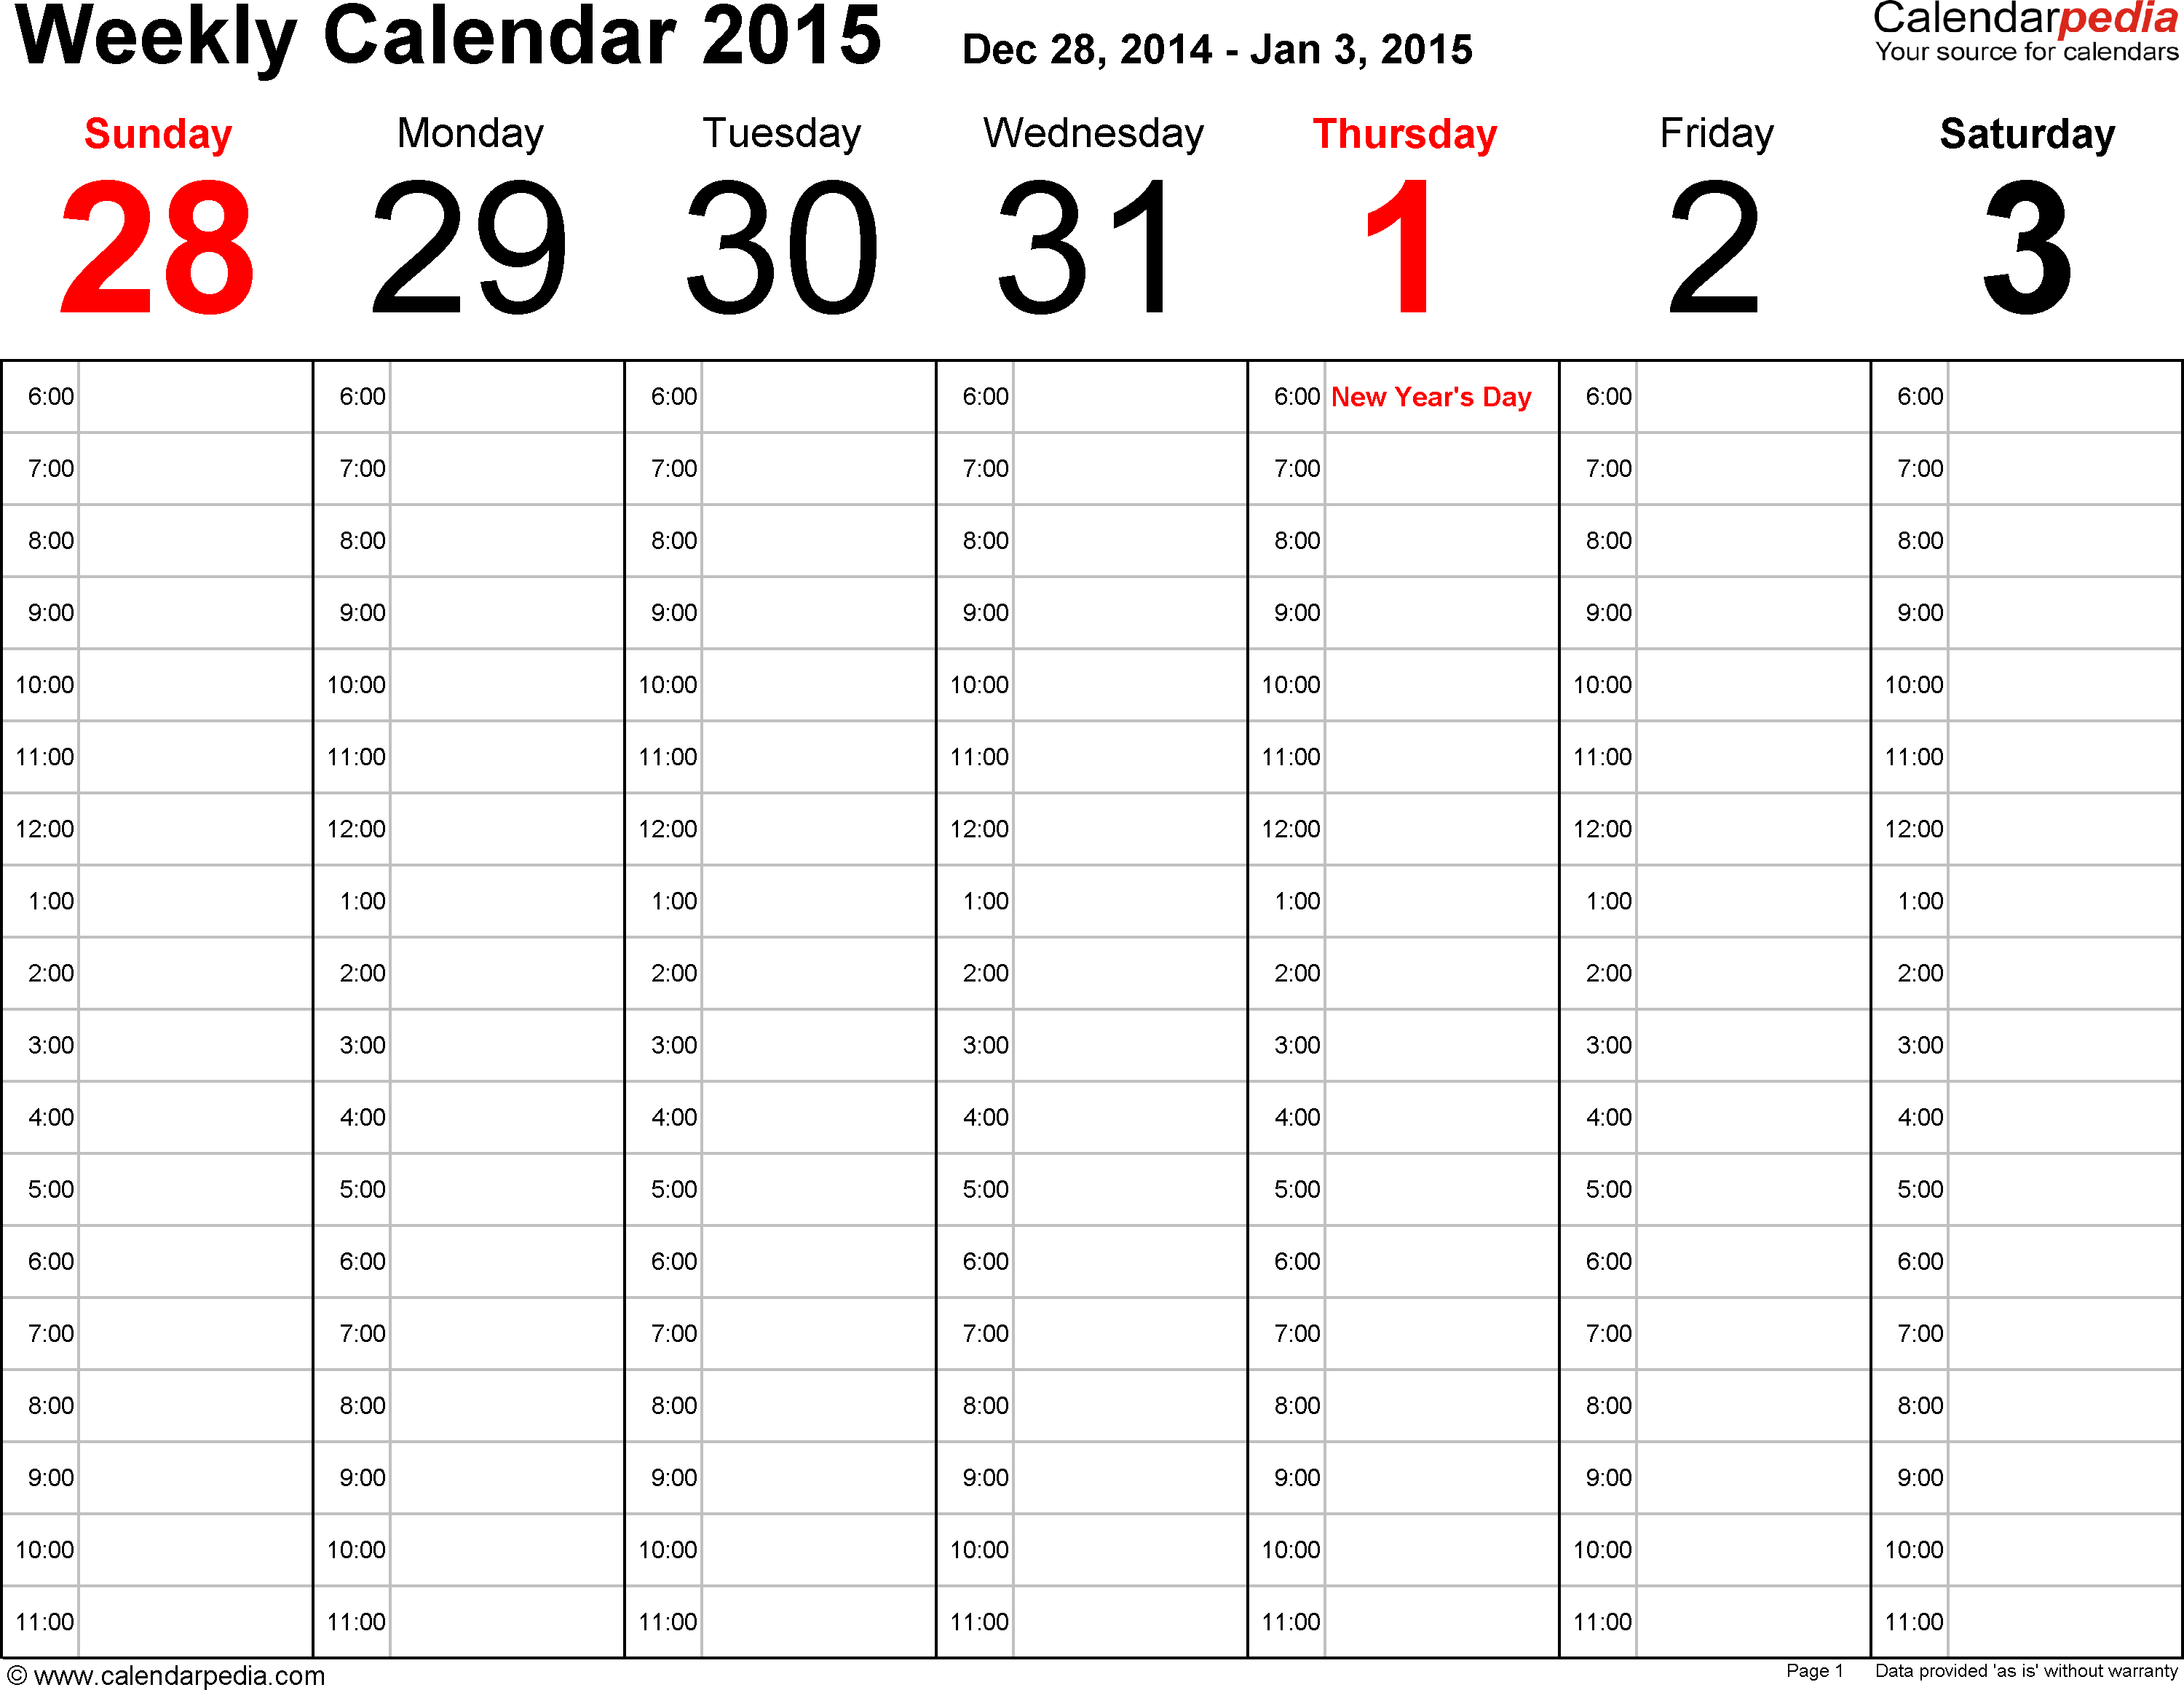 Download Weekly calendar 2015: template for Excel version 1, landscape, 53 pages, time management layout (18 hours per day, 6am to 12 midnight in 1 hour steps)